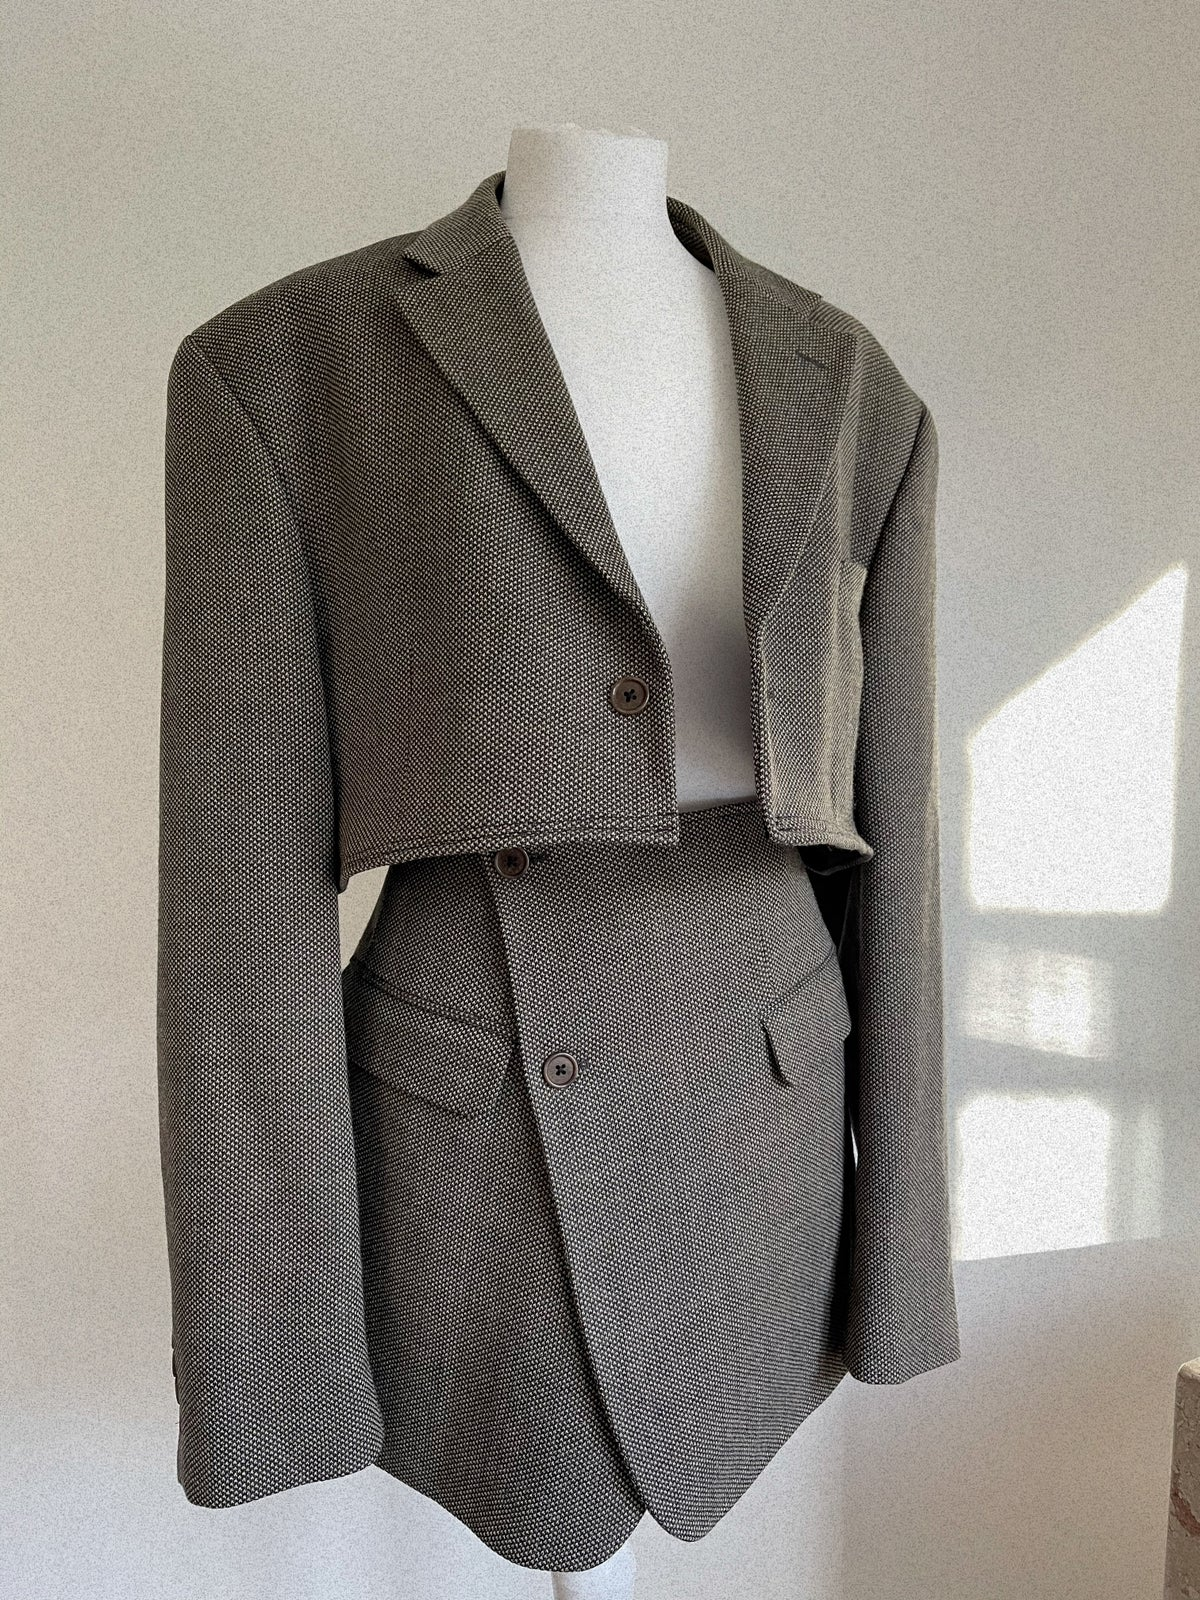 Reworked Grey Tweed Suit